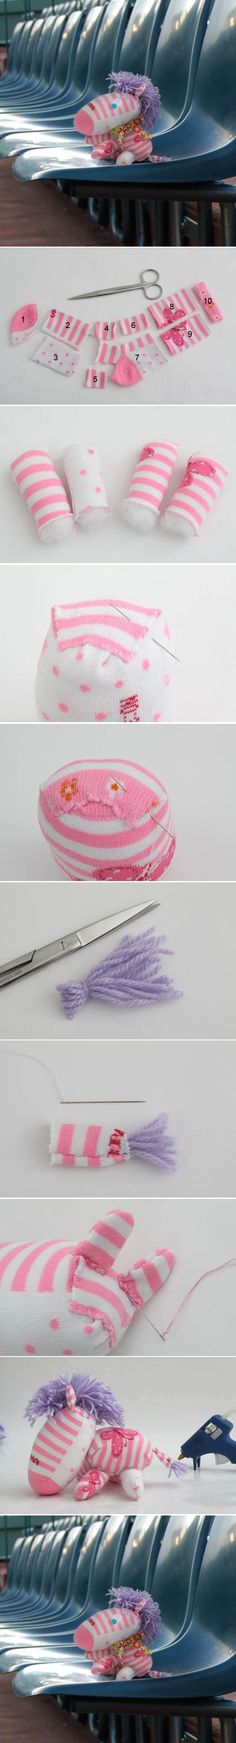 DIY Little Sock Zebra DIY Projects | UsefulDIY.com